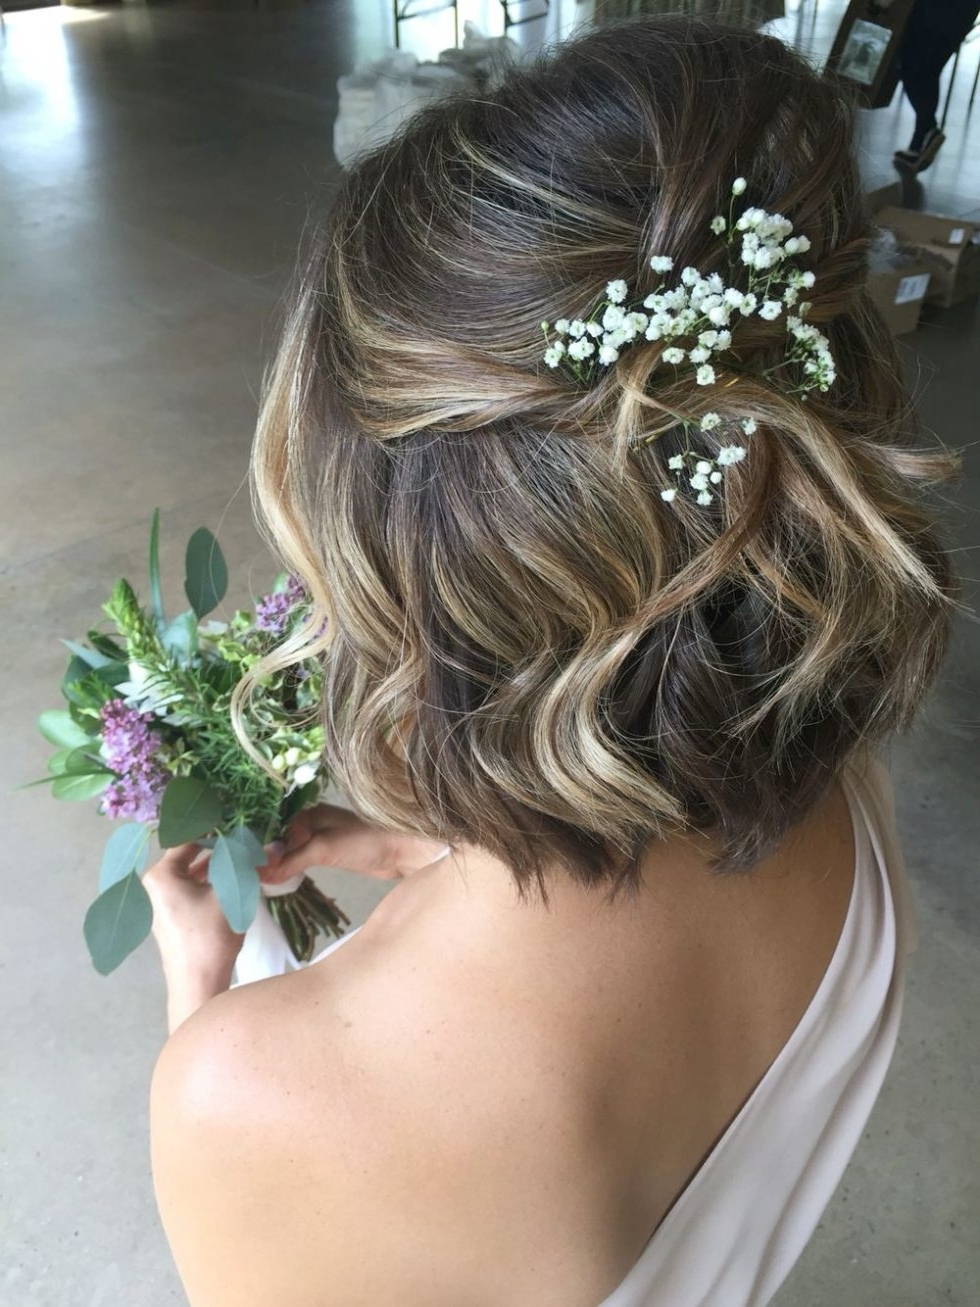 Awesome Wedding Hairstyles For Short Hair Bridesmaids #2 Bridesmaid For Current Short Wedding Hairstyles For Bridesmaids (Gallery 10 of 15)